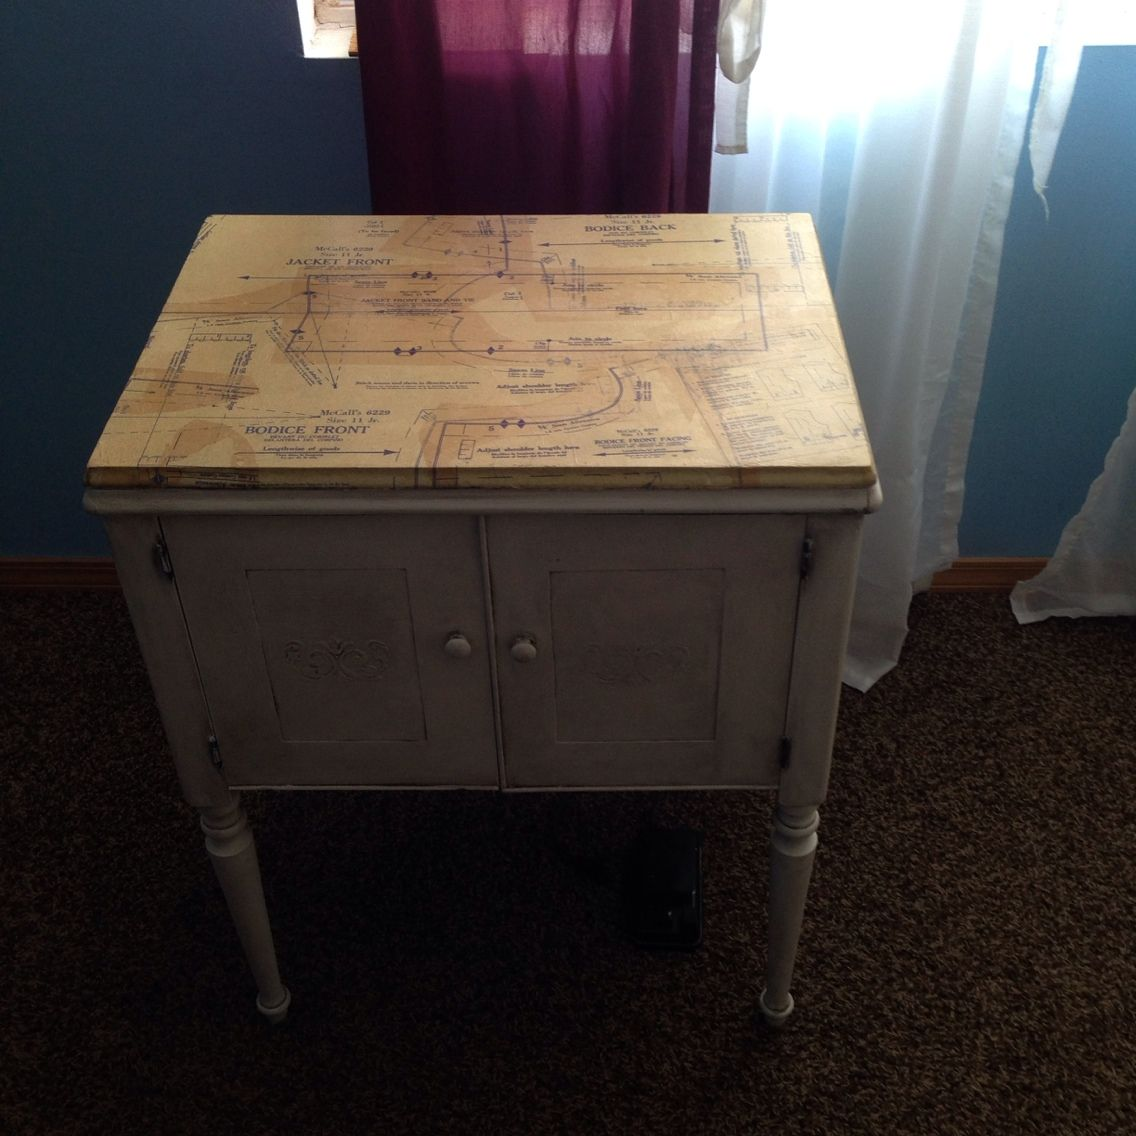 Vintage Singer Sewing Machine and cabinet painted